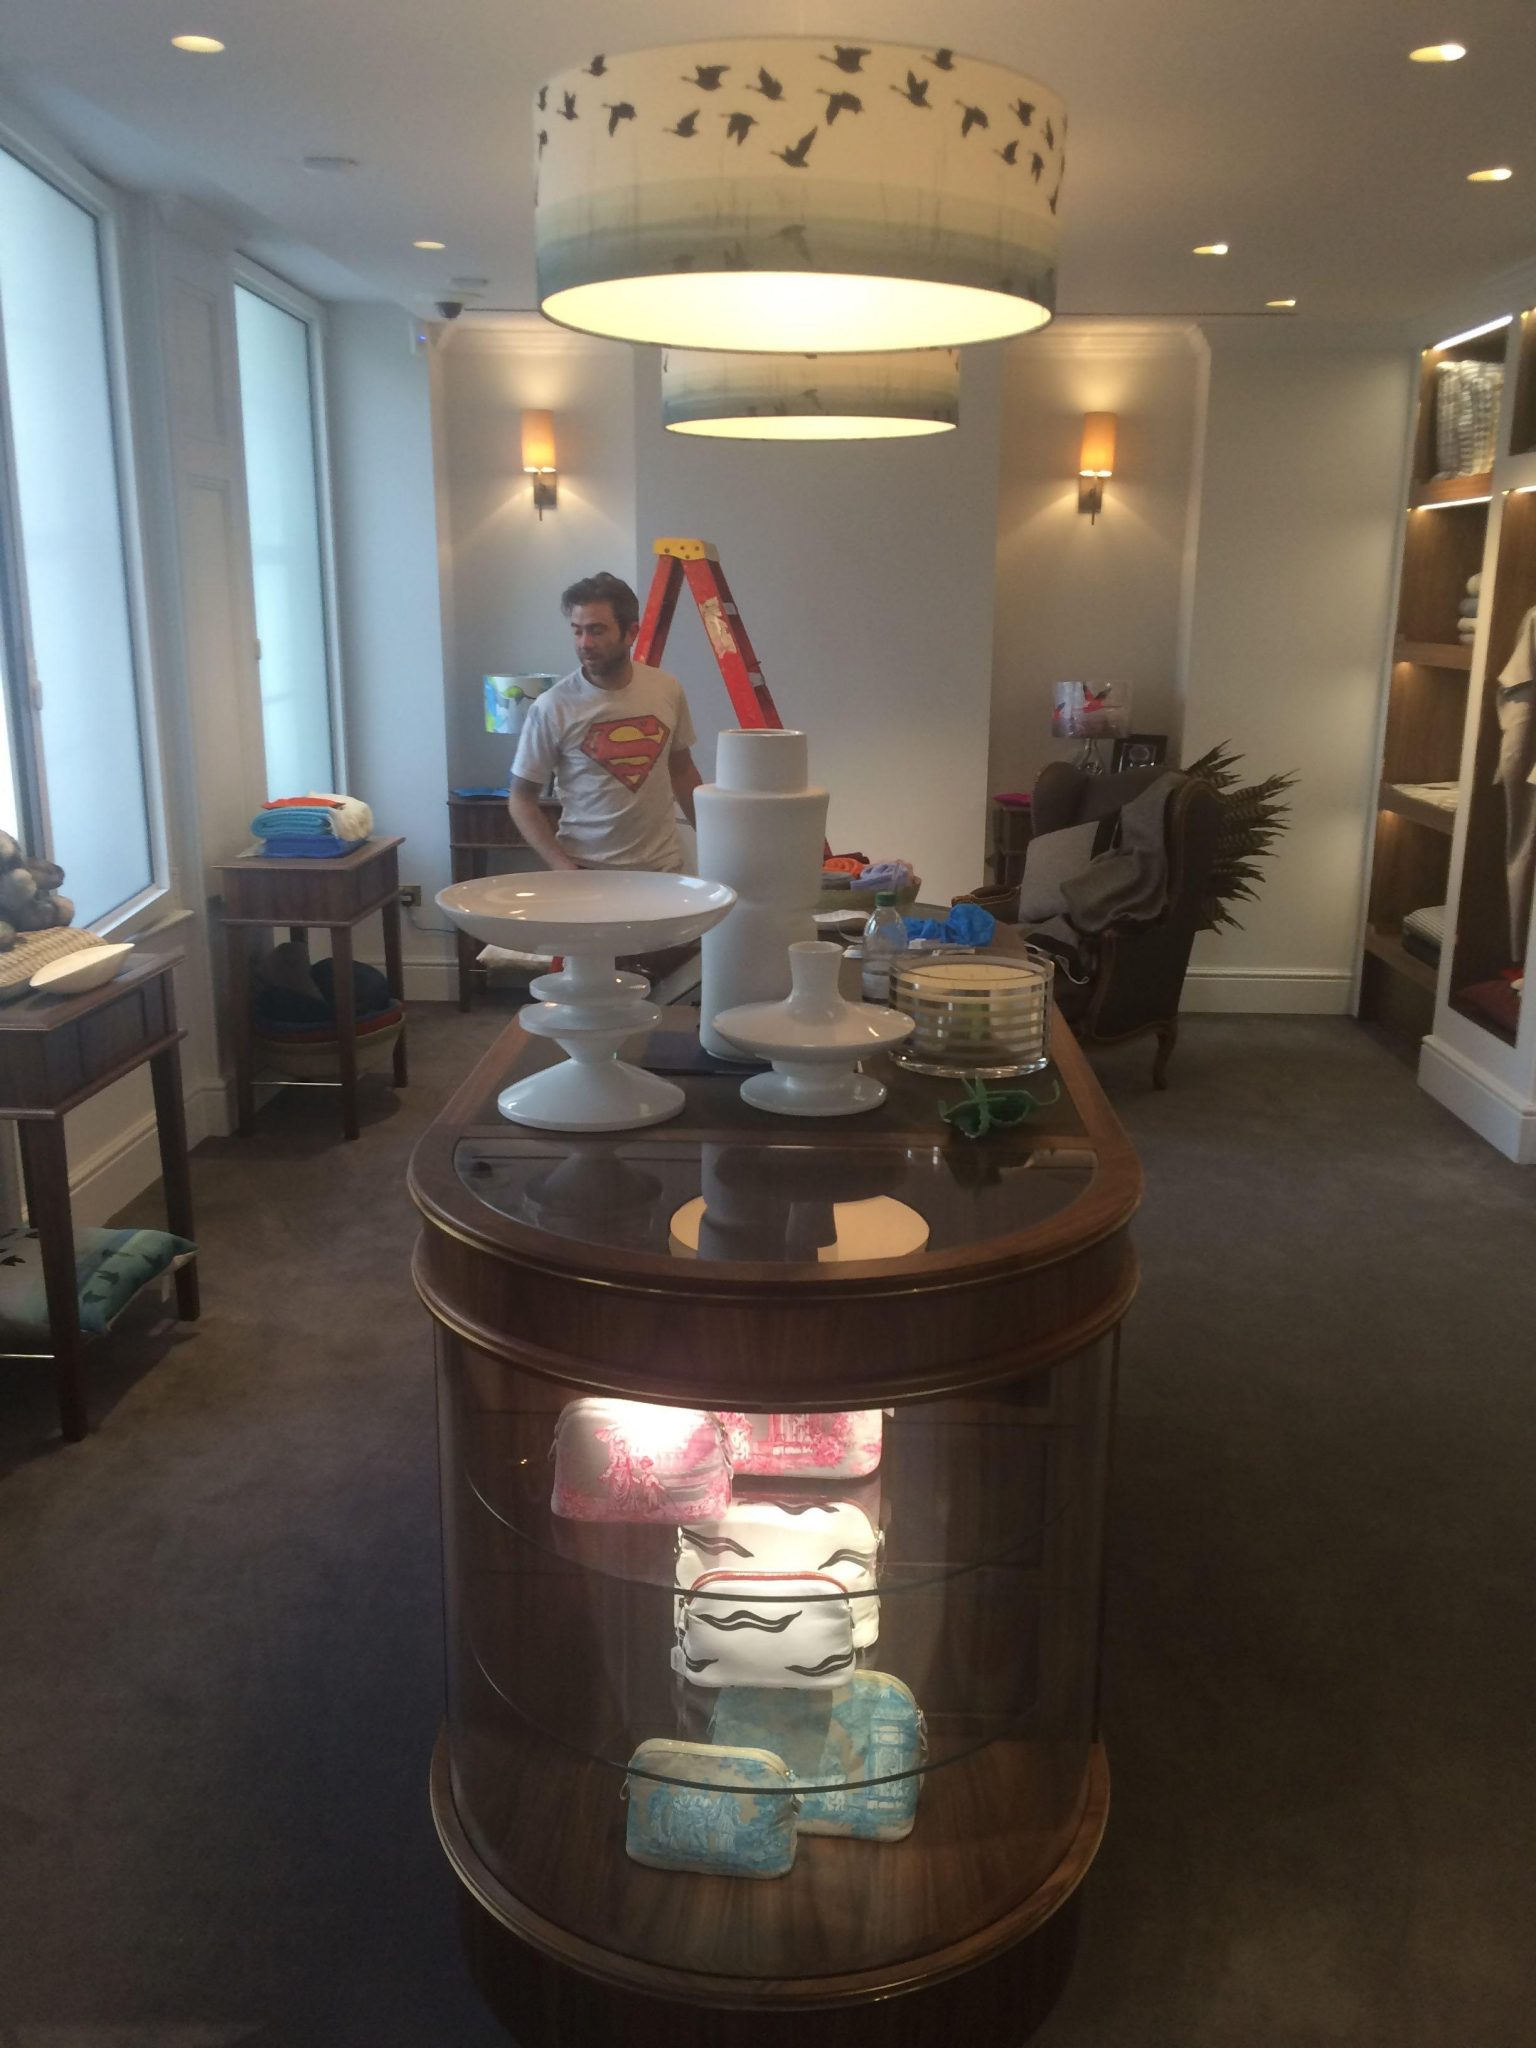 high-end shop fit out by painters and decorators in central london